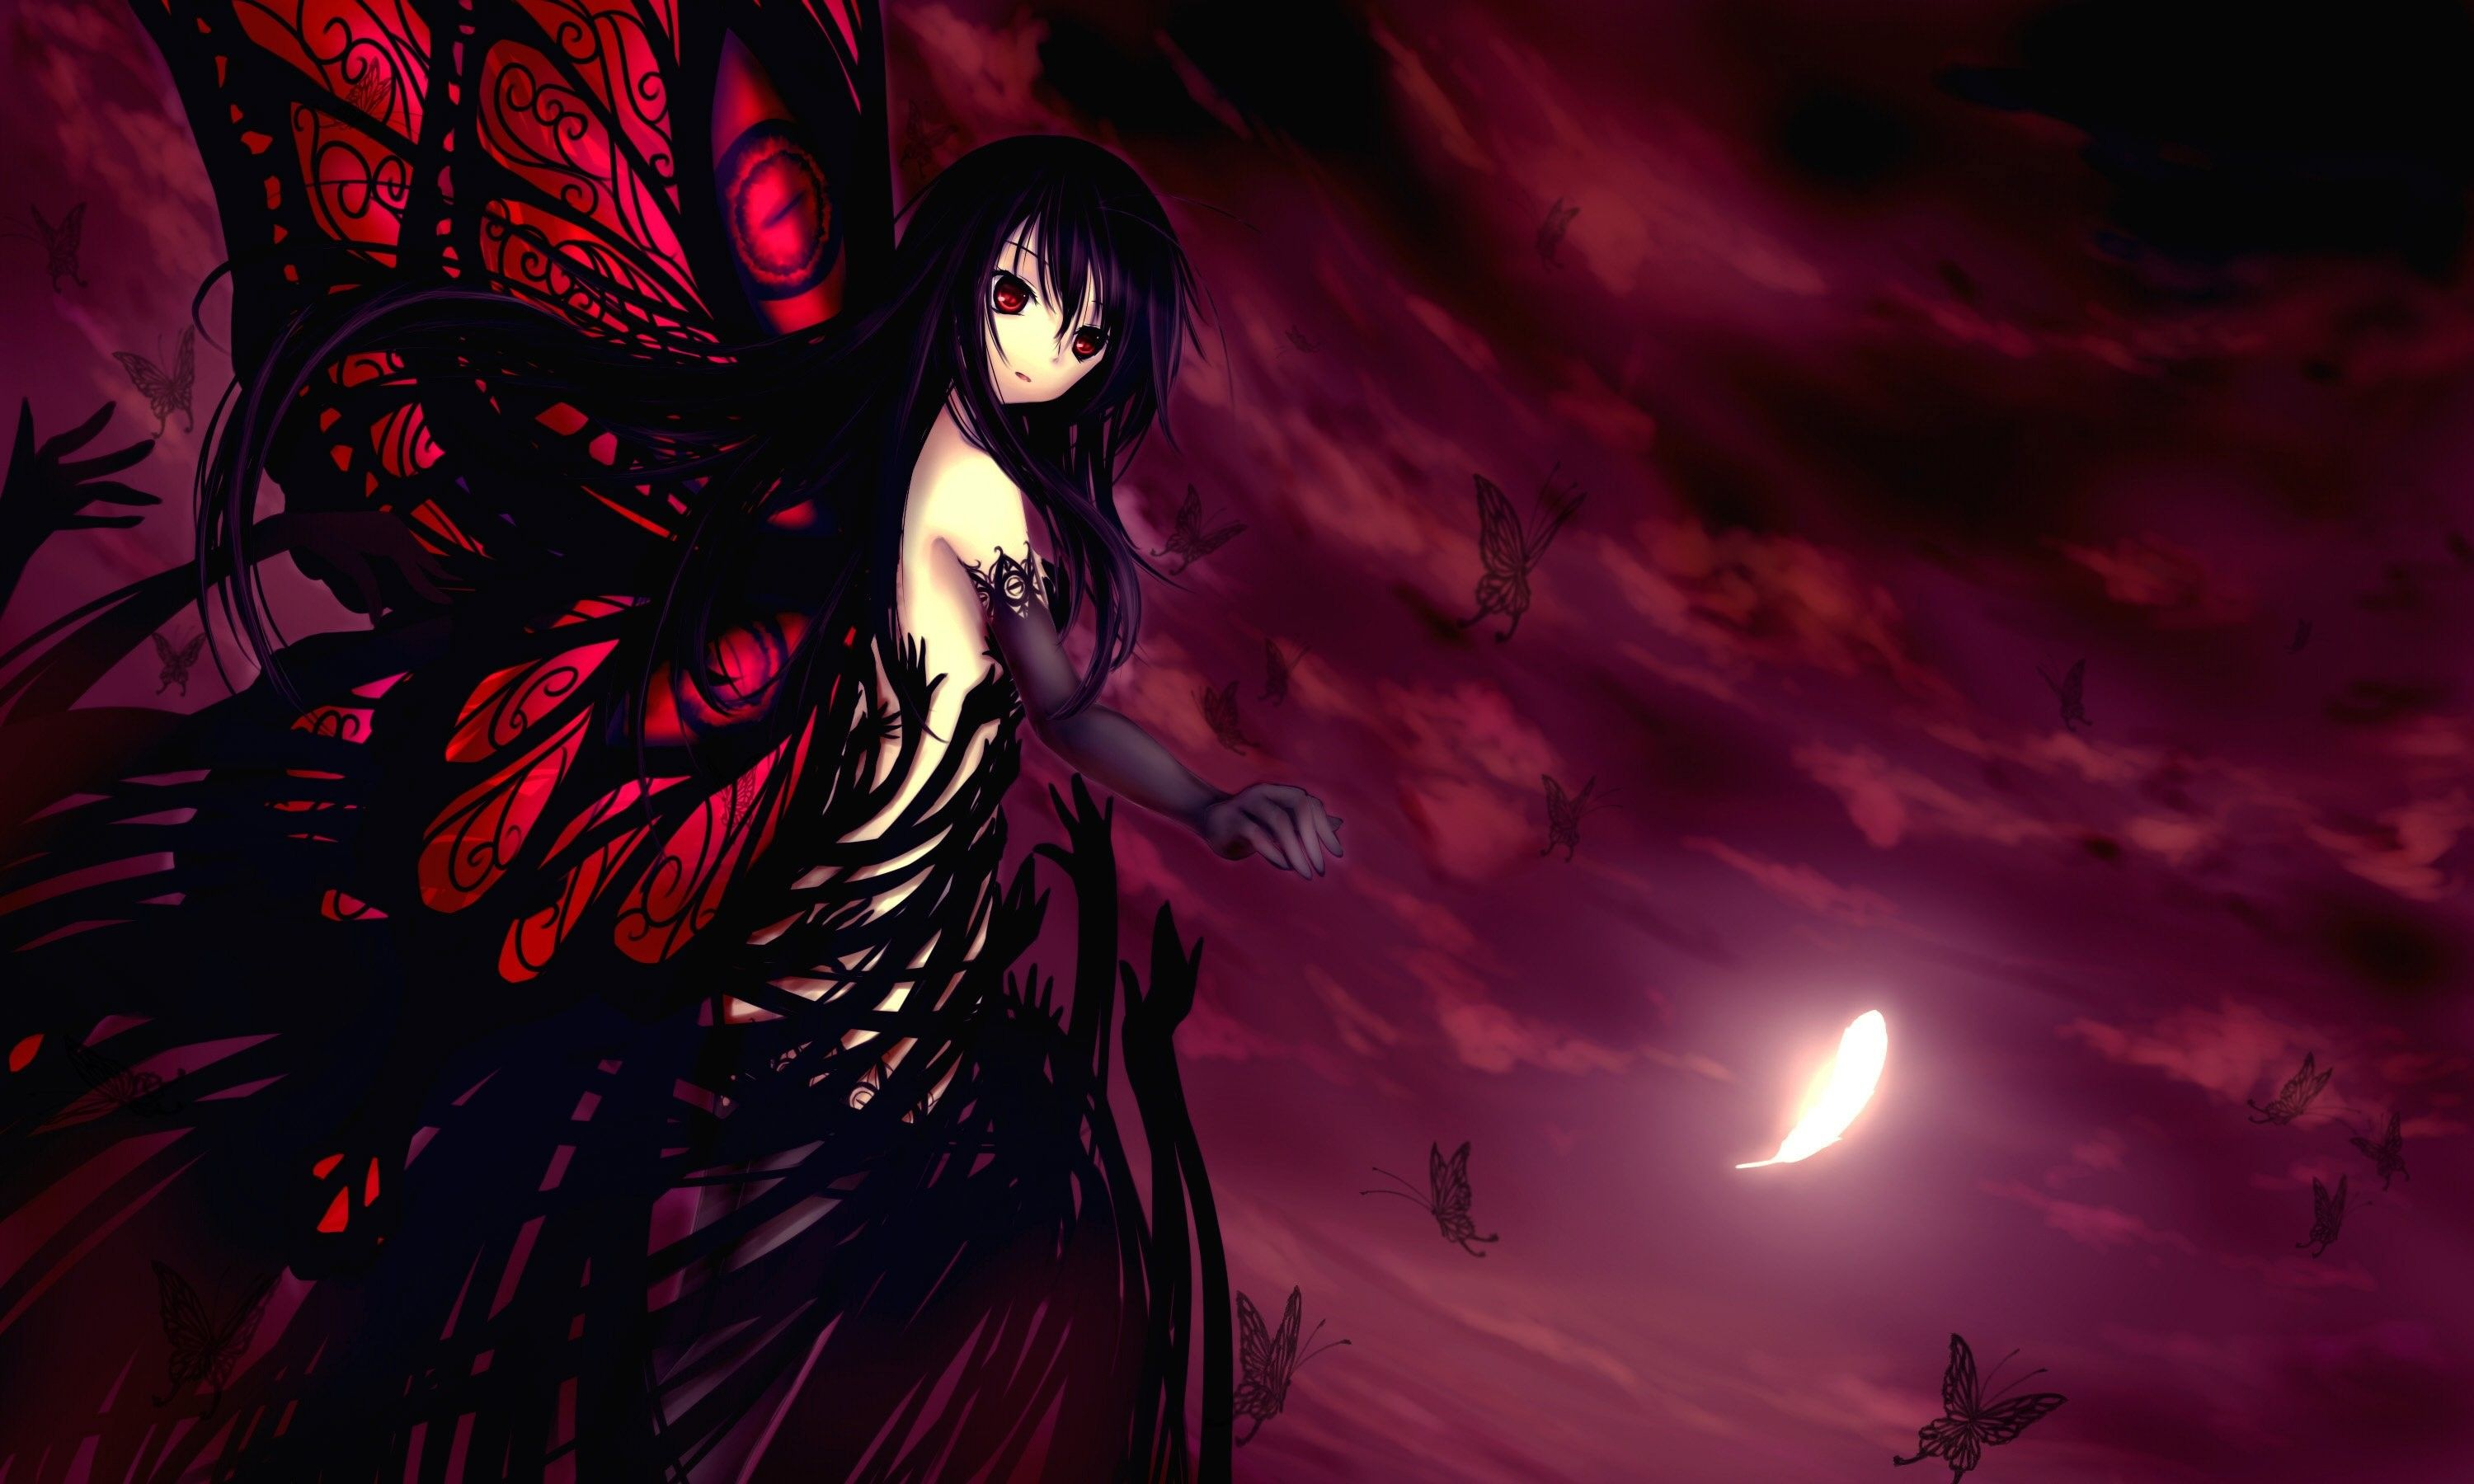 Gothic Anime Angel Wallpapers Top Free Gothic Anime Angel